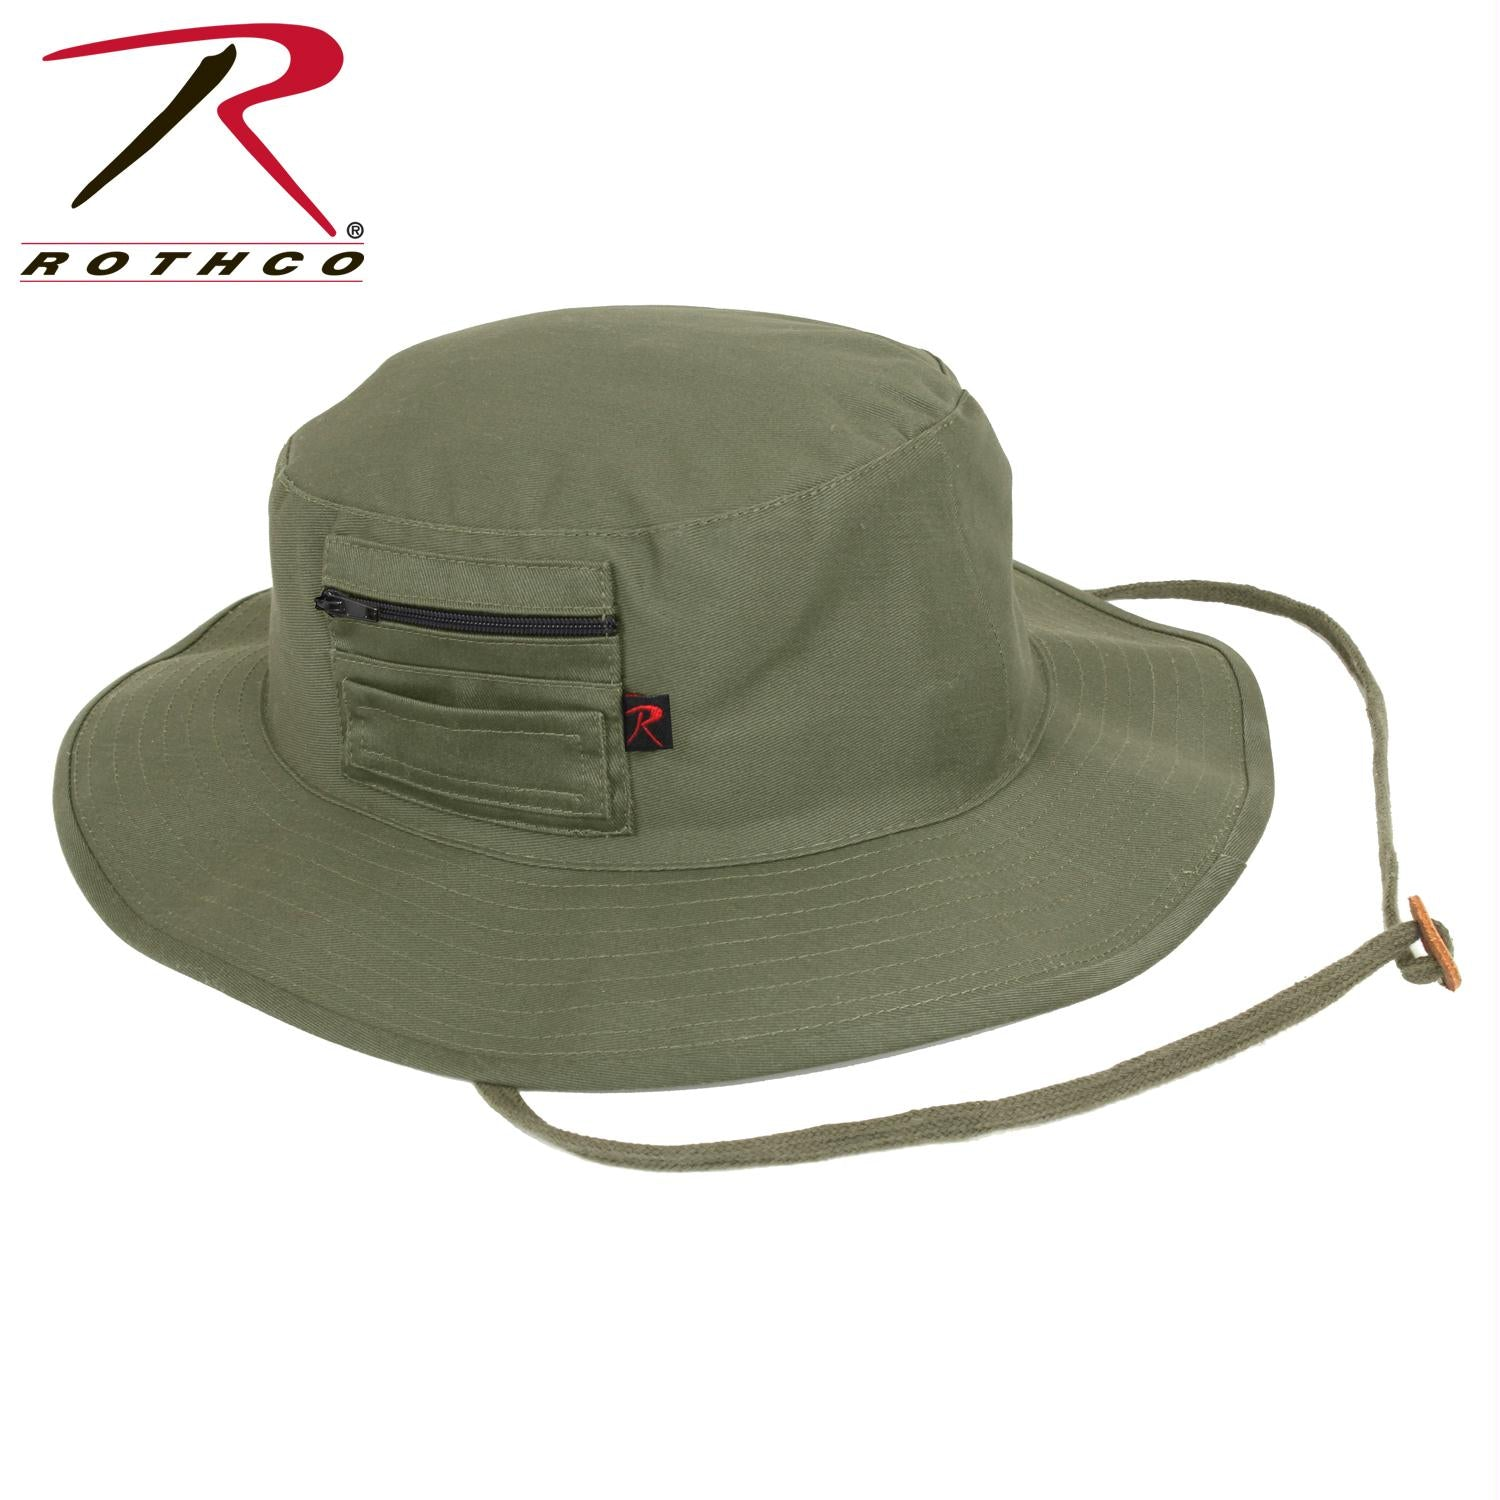 Rothco MA-1 Boonie Hat - Olive Drab / 7 3/4